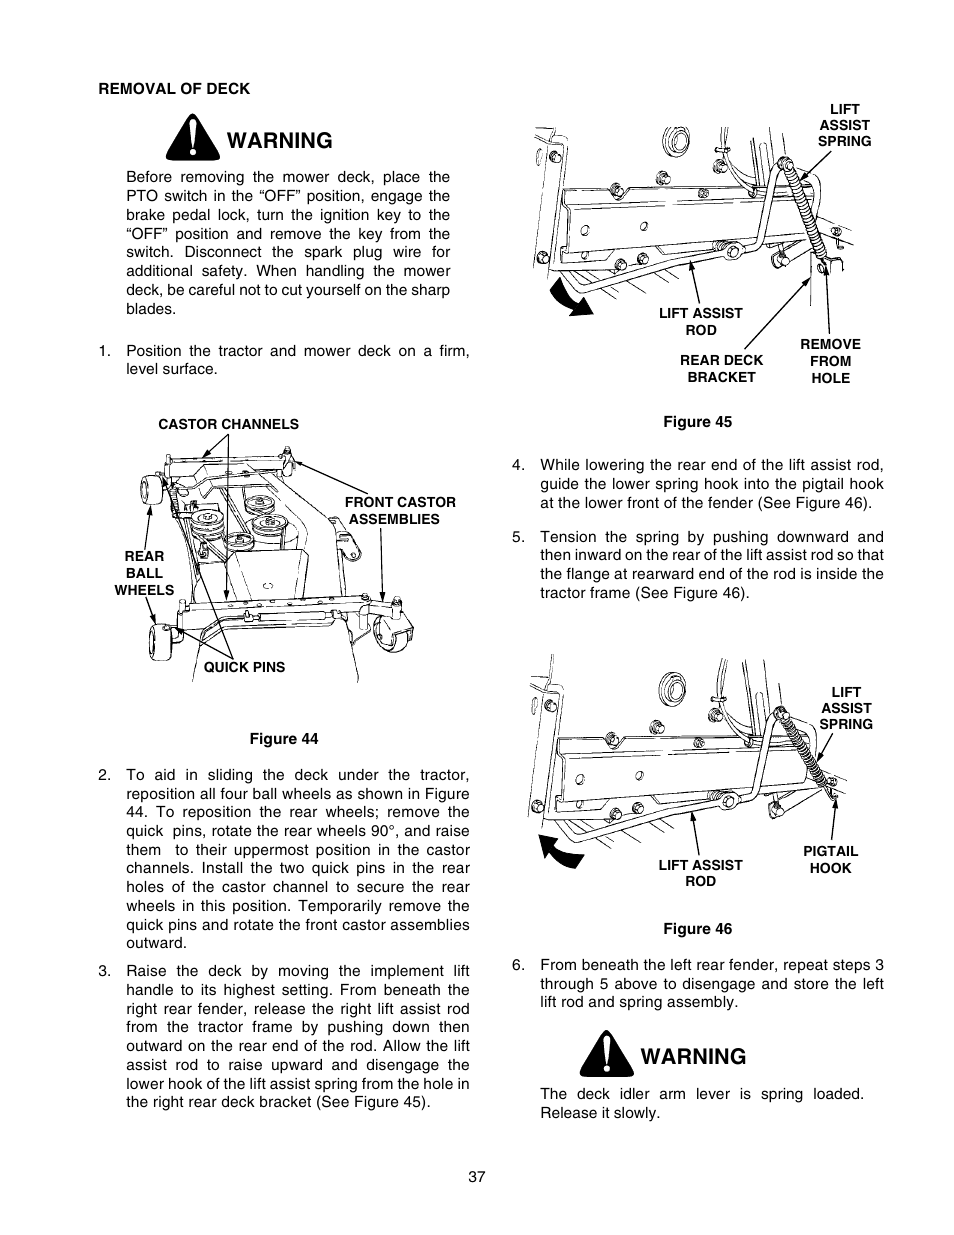 2206 Cub Cadet Wiring Diagram Another Blog About Engine Schematics Warning User Manual Page 37 60 Original Mode Rh Manualsdir Com